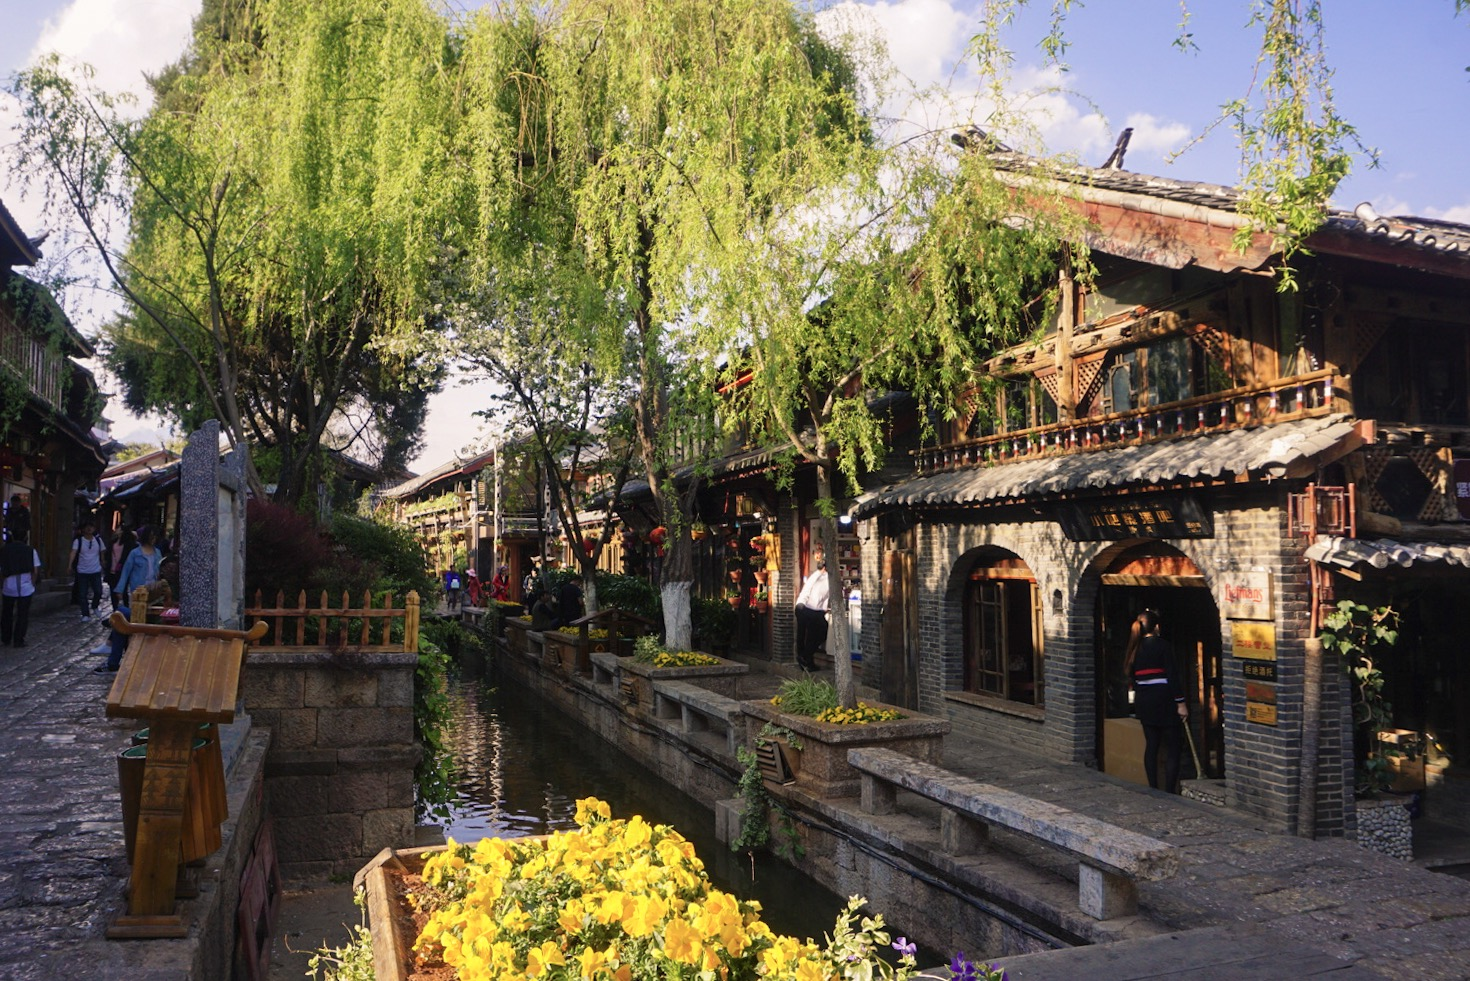 CocoGigiDesign -China-Lijiang 2018_4421.JPG